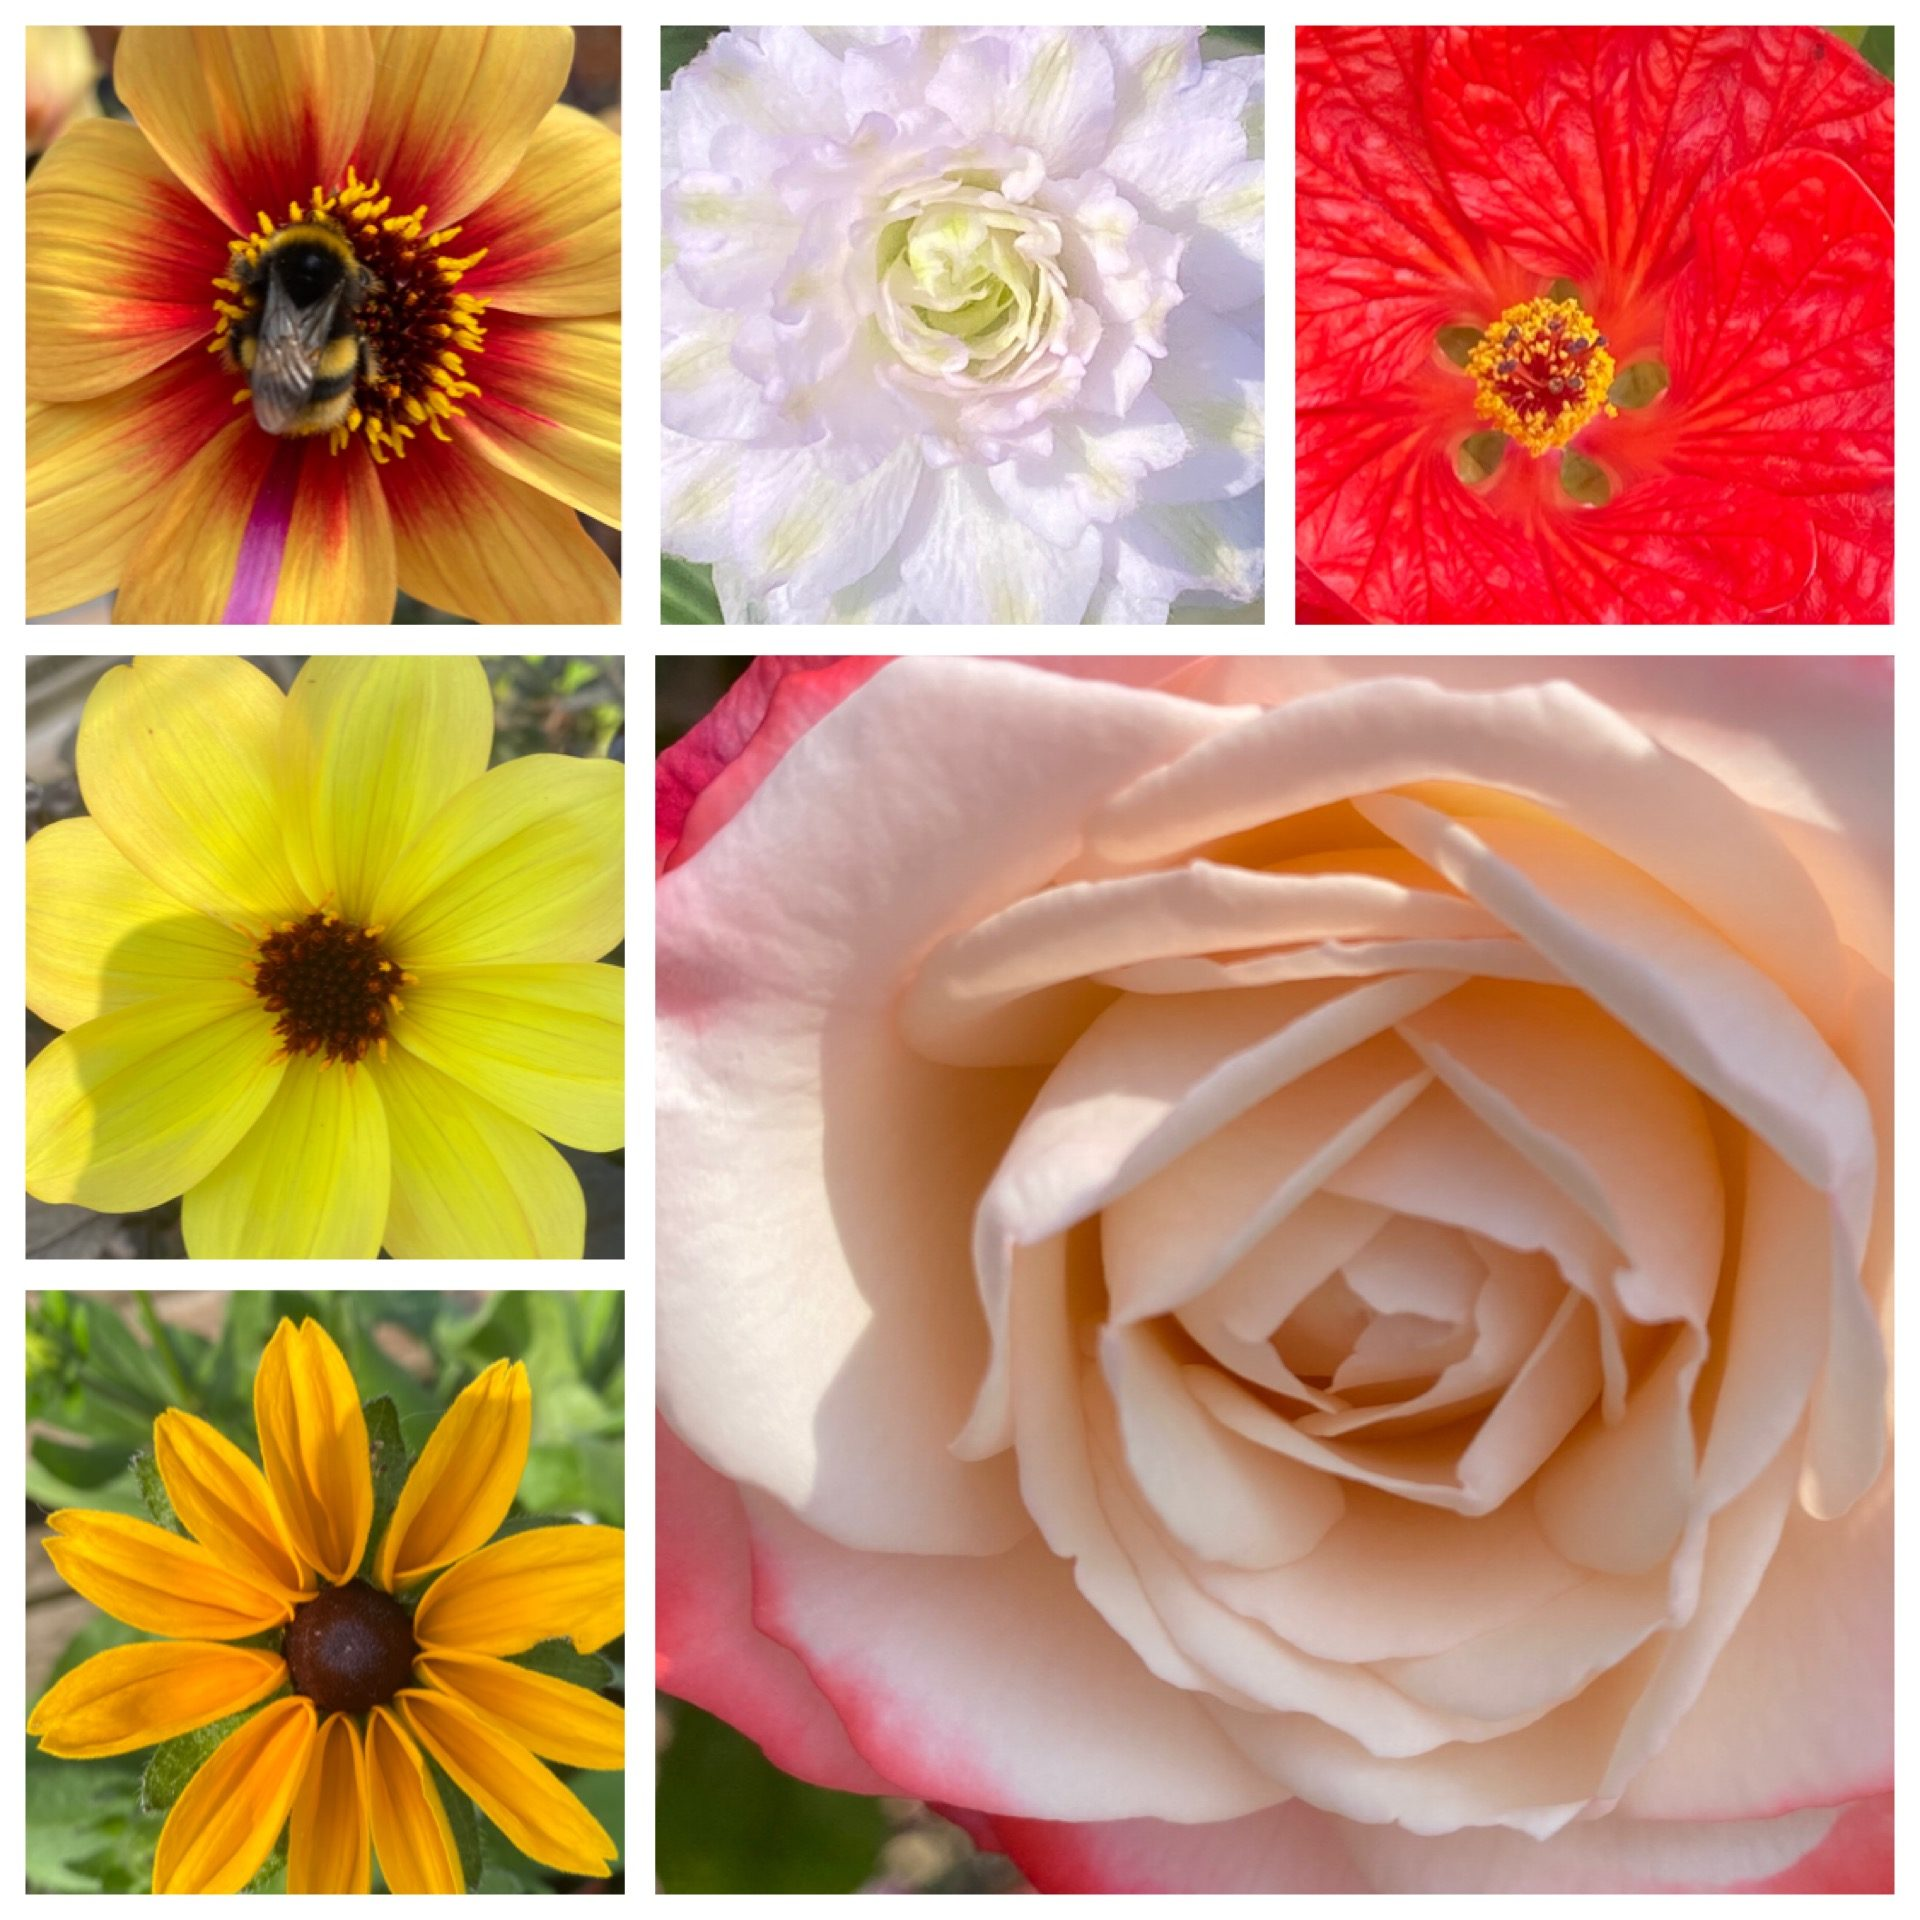 Flower colour meanings.